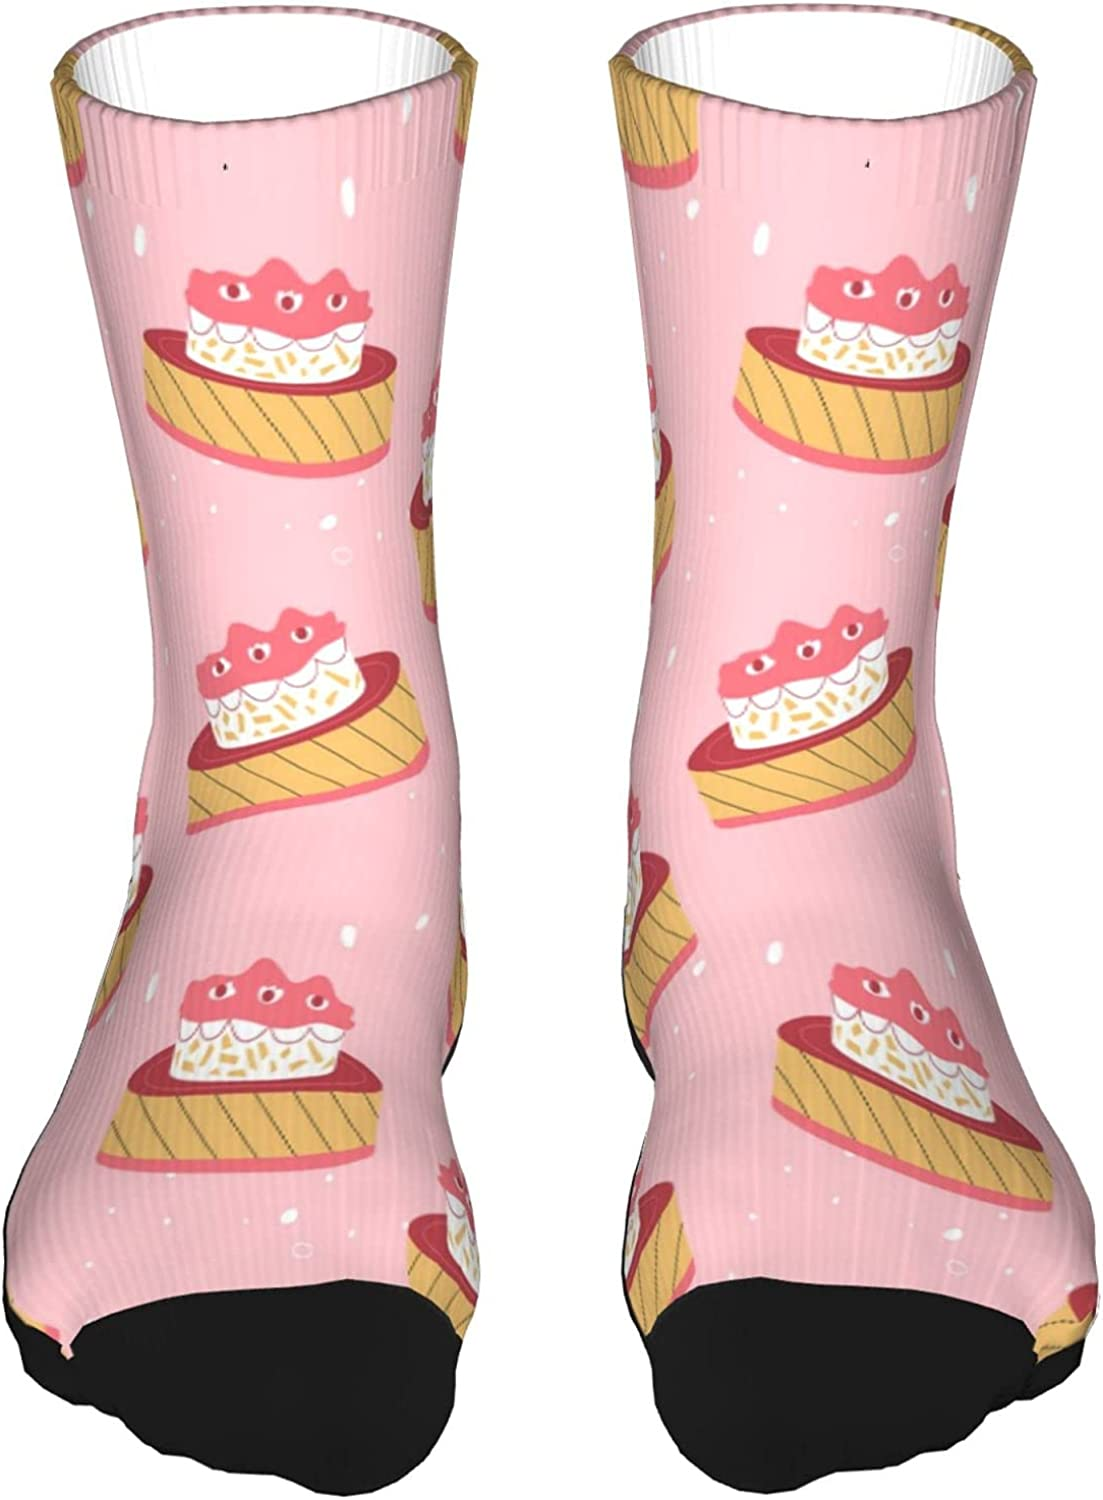 Thick Contrast Color Socks Confectionery Cake Athletic Novelty Fashion Sockscrew For Men Women